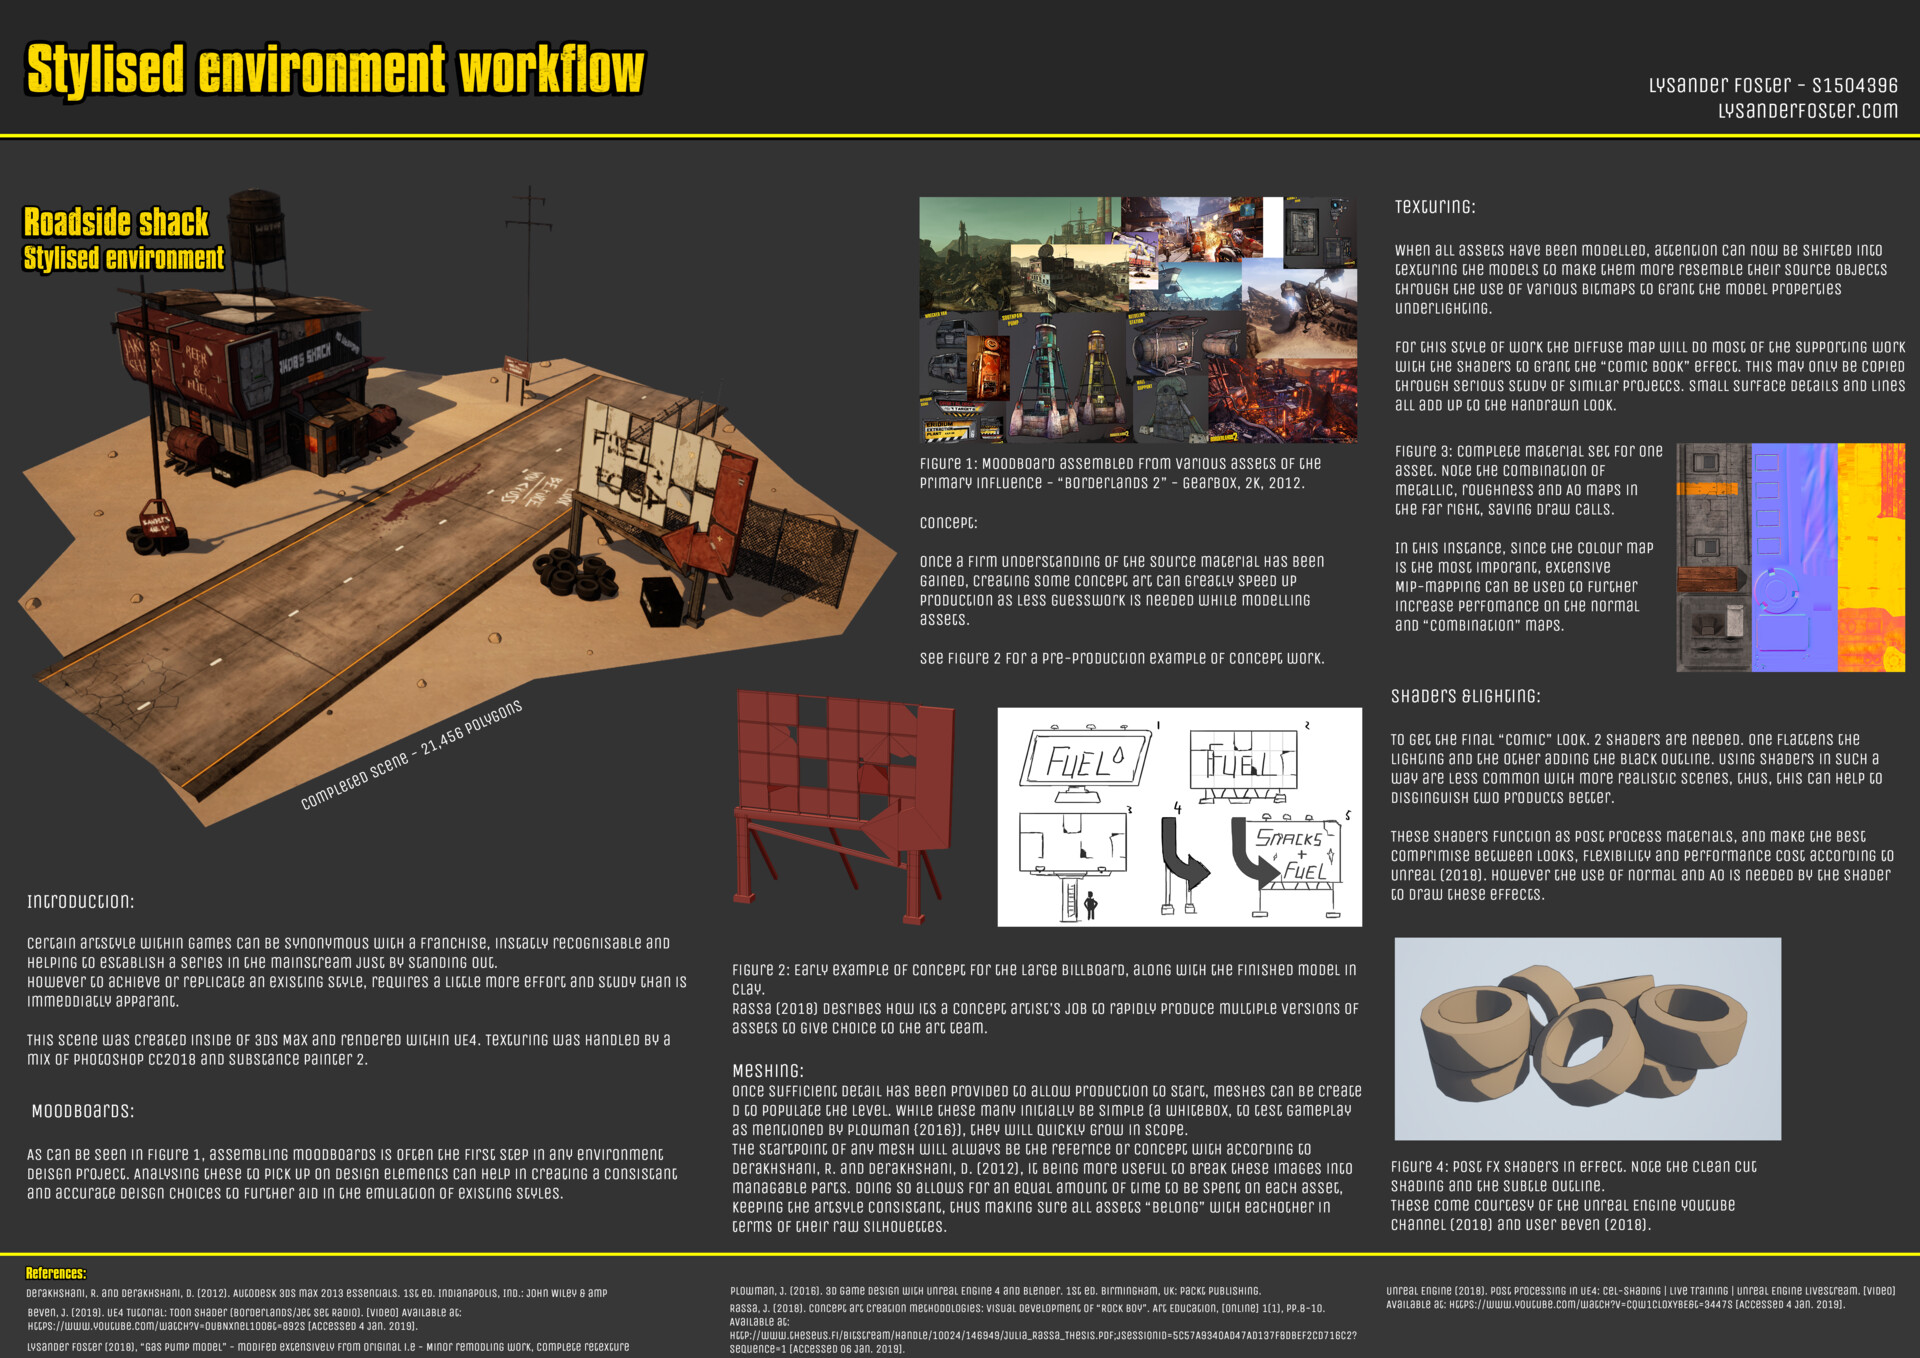 Original poster I submitted as part of the grading procedure. Fitting that amount of information on it was tough!